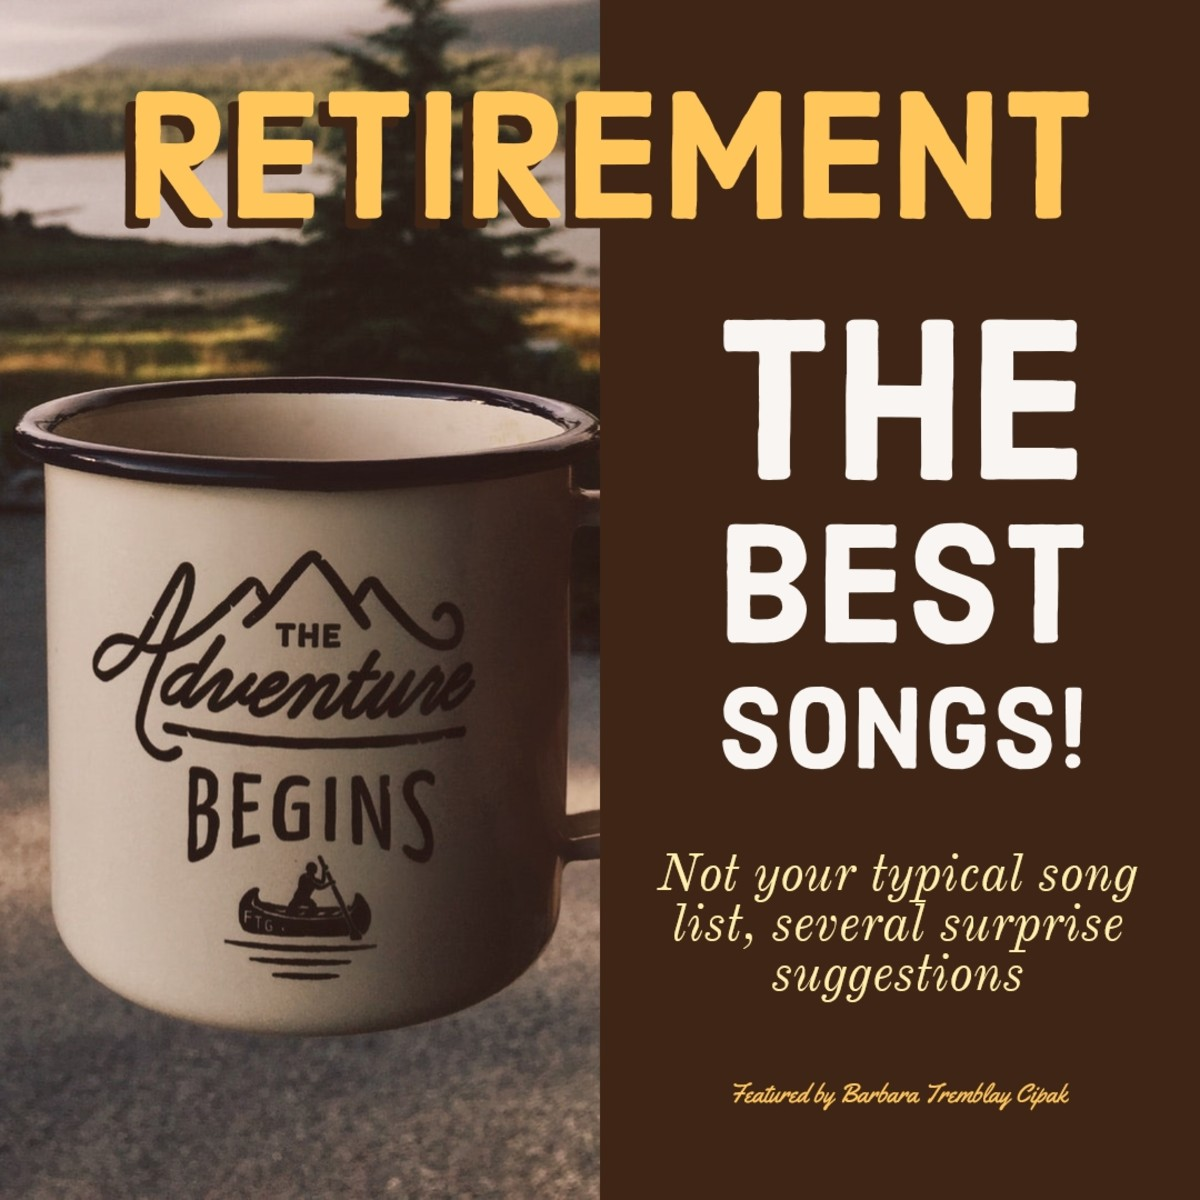 The Best Songs About Retirement